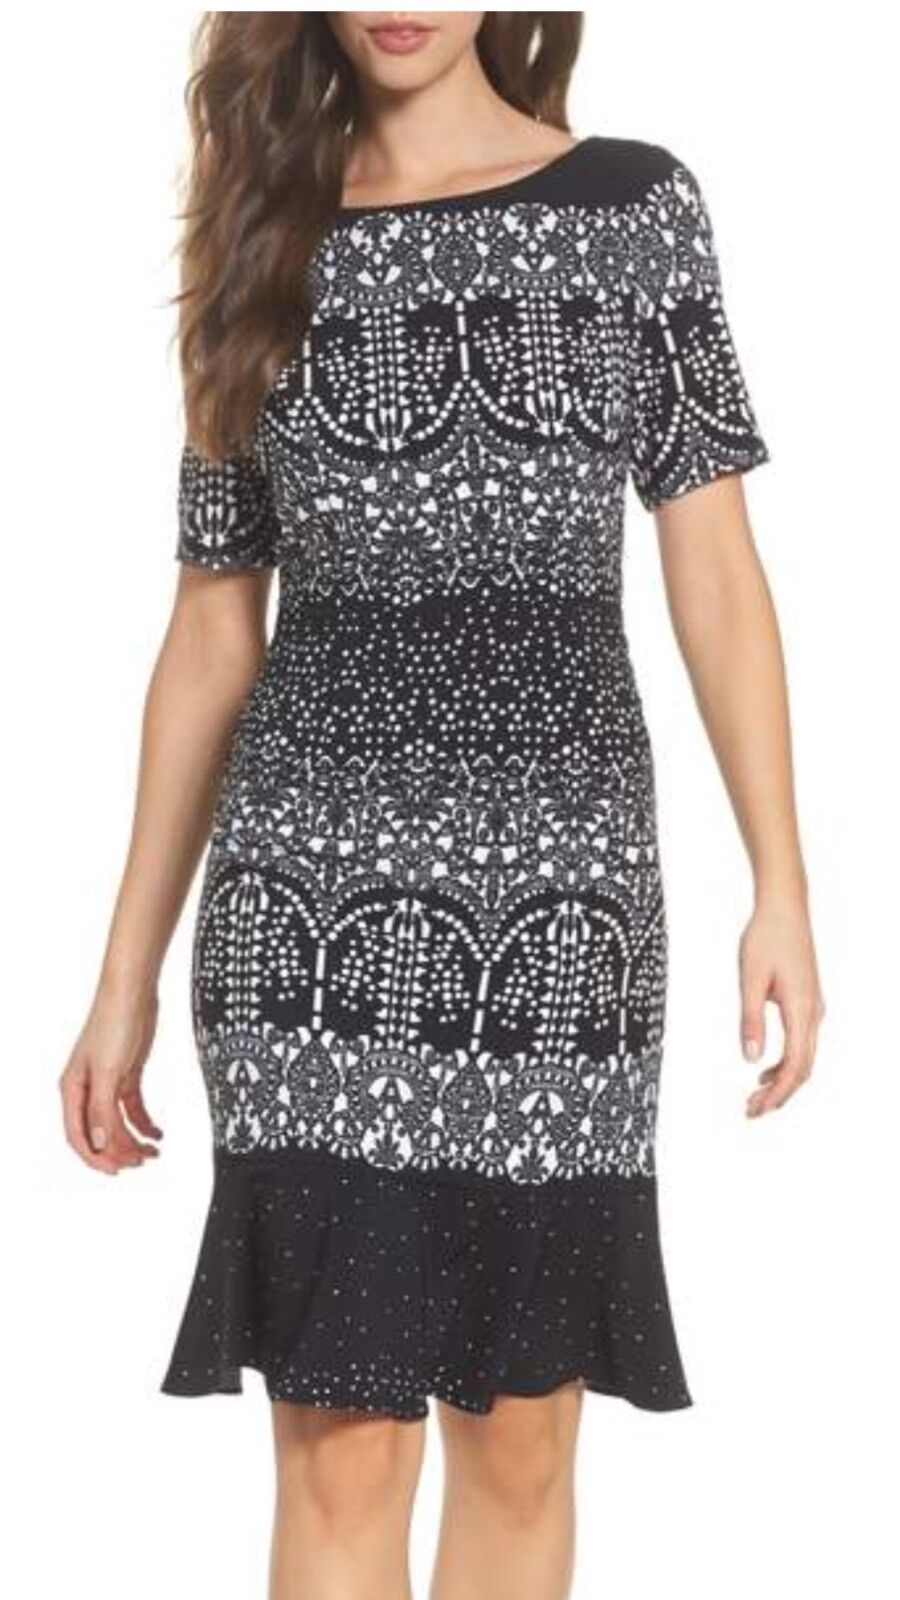 ADRIANNA PAPELL DRESS NEW WITH TAG SIZE 16 LENGTH 41' RETAIL LINED SMOKEFREE